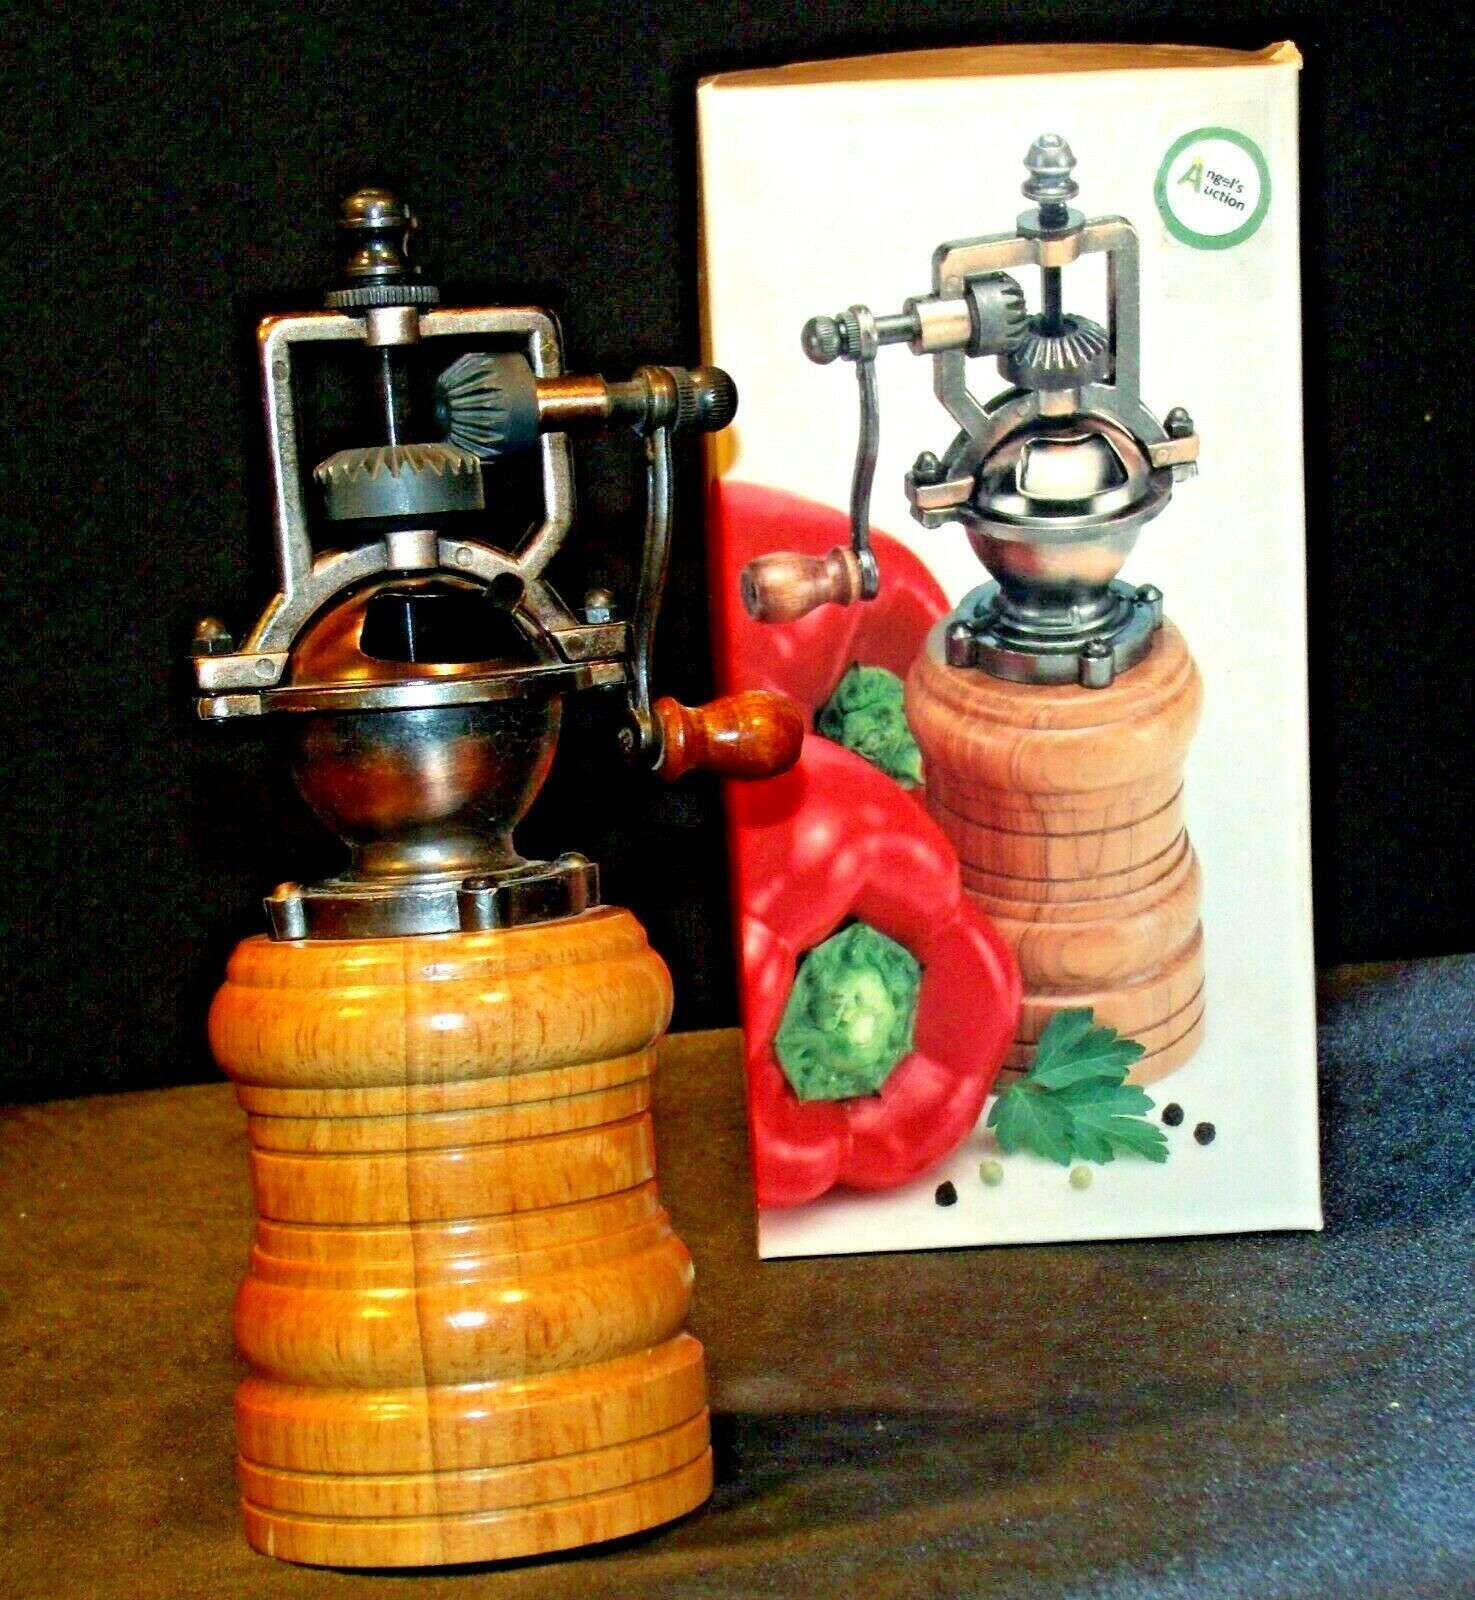 Replica Olde Thompson Pepper Grinder with Box AA-191971 Collectible 3044-36-0